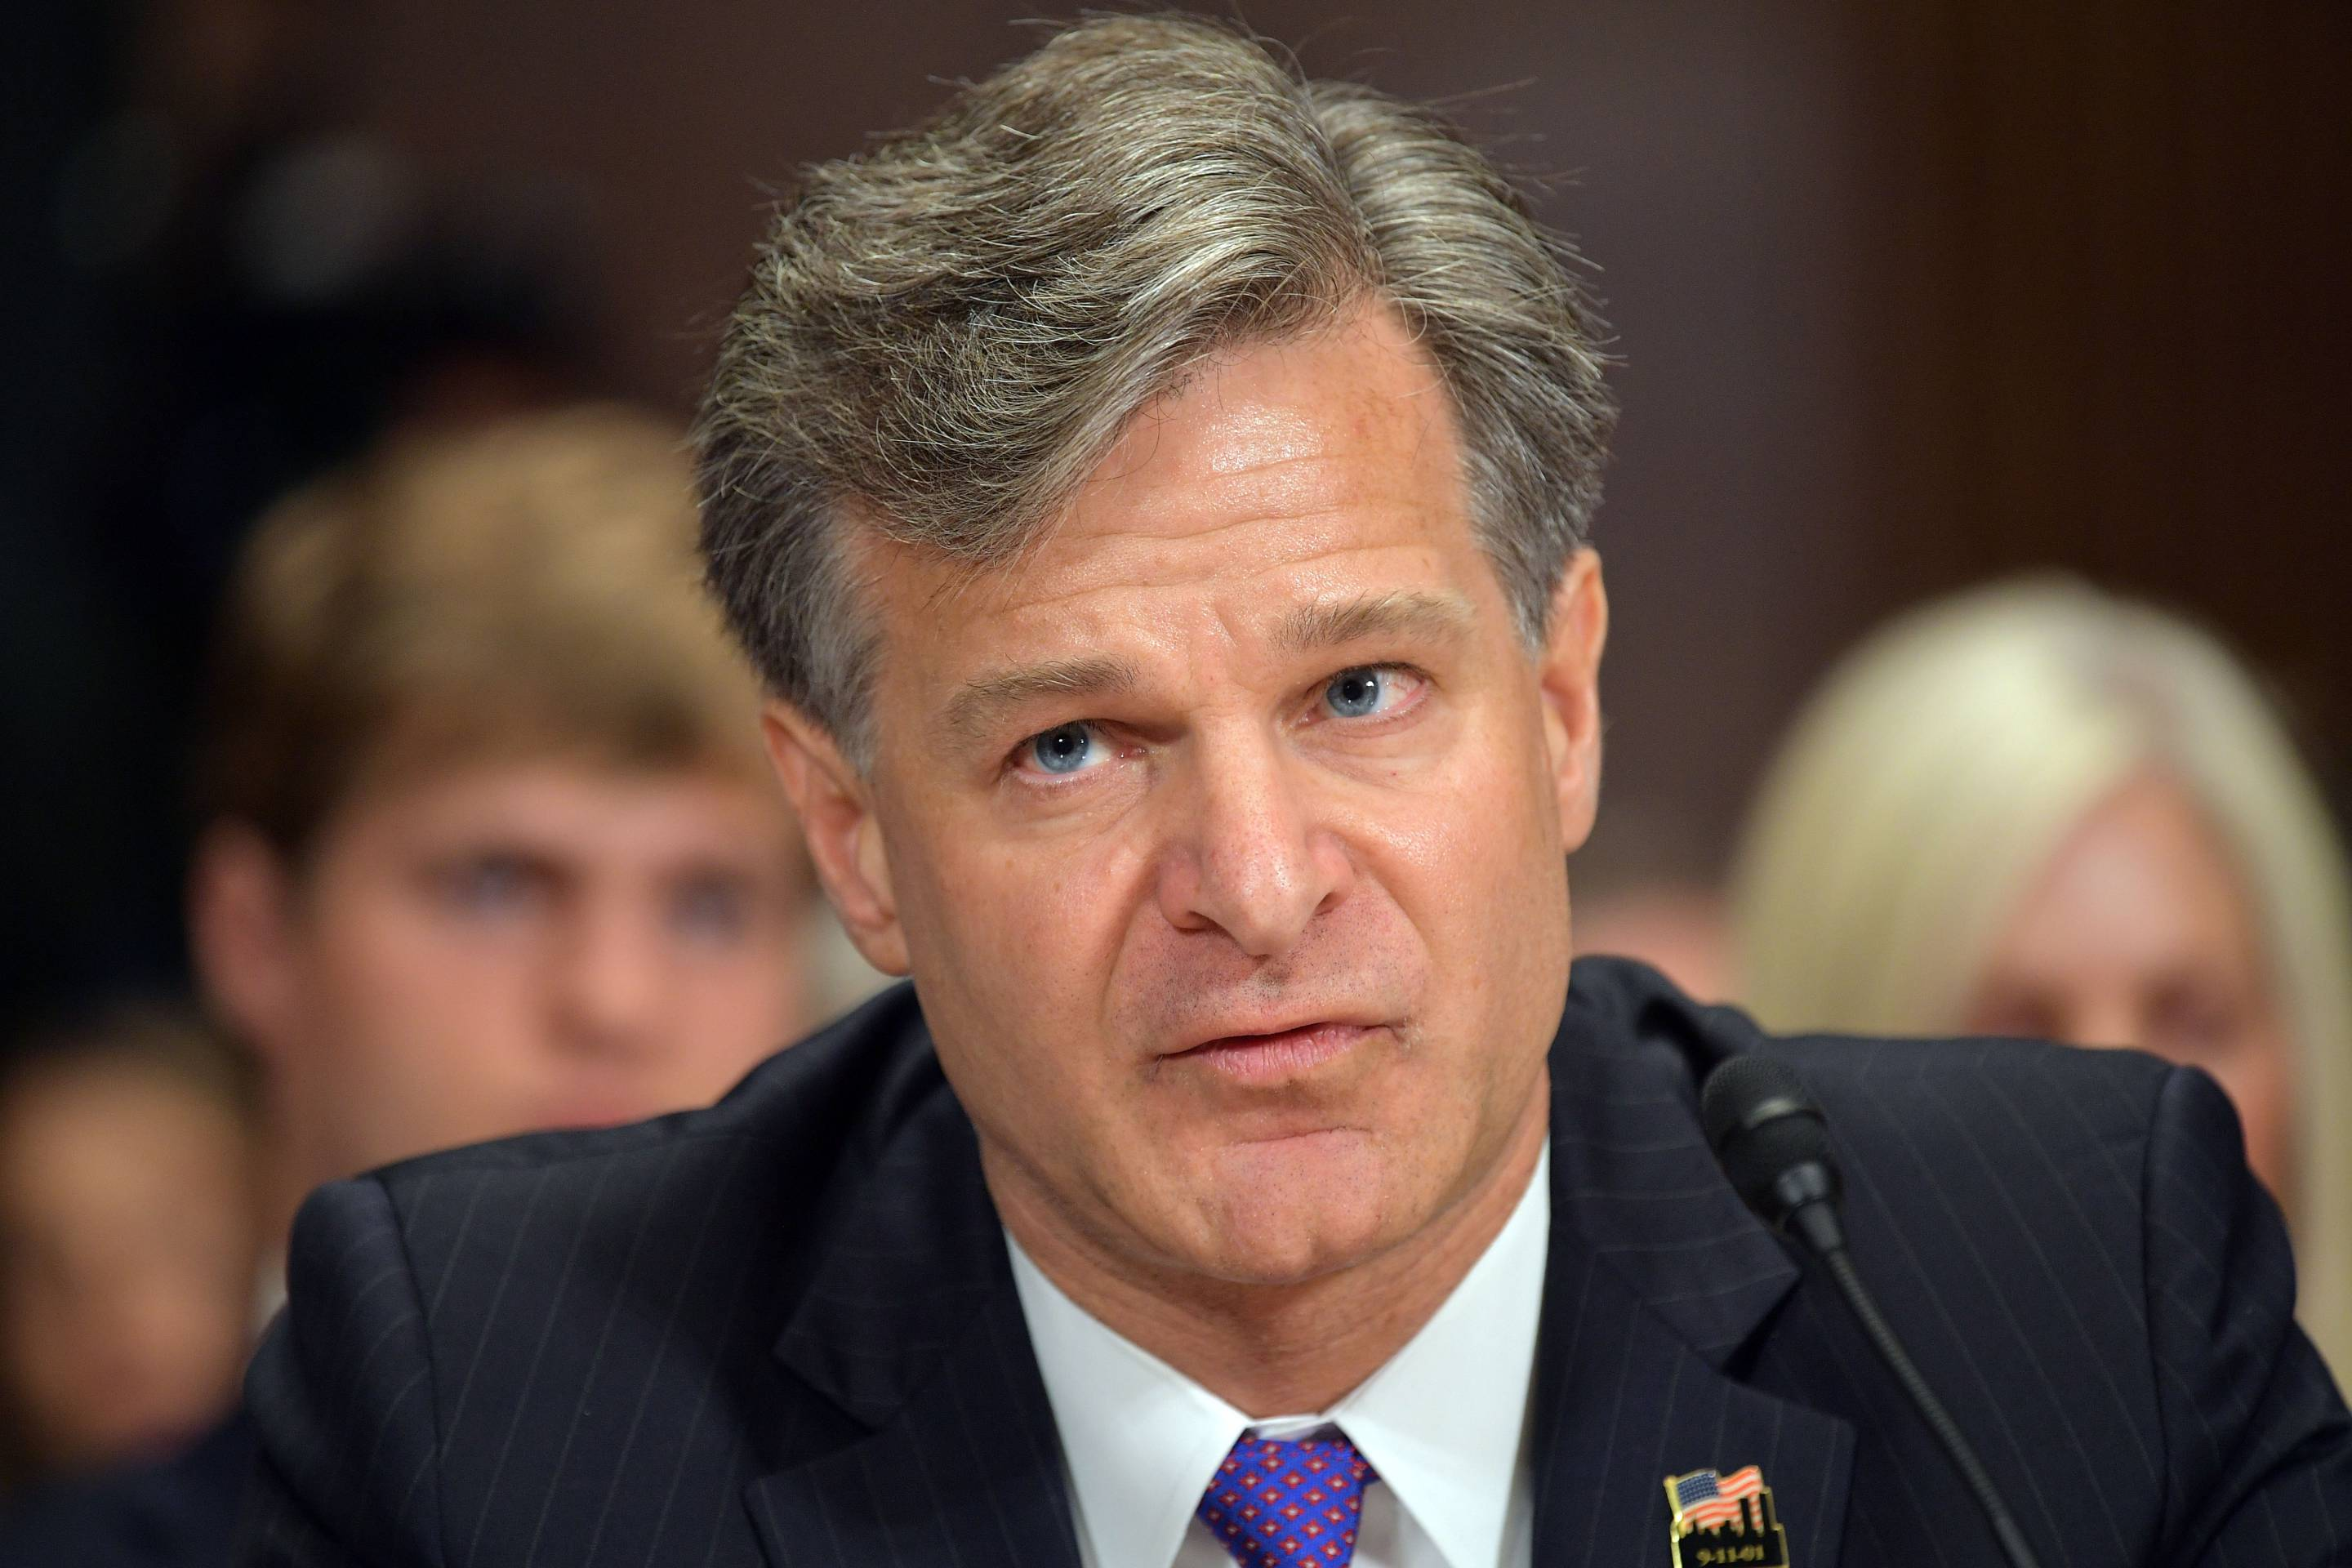 US-POLITICS-FBI-WRAY